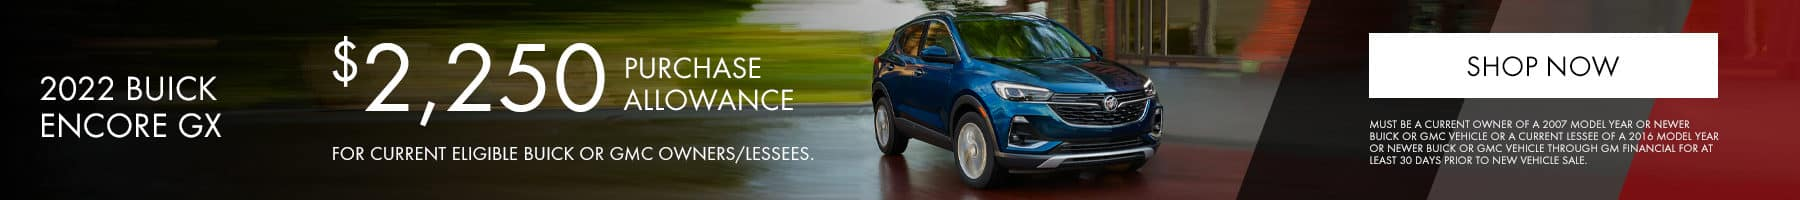 2022 Buick Encore GX, $2,250 Purchase Allowance For Current Eligible Buick or GMC Owners/Lessees.